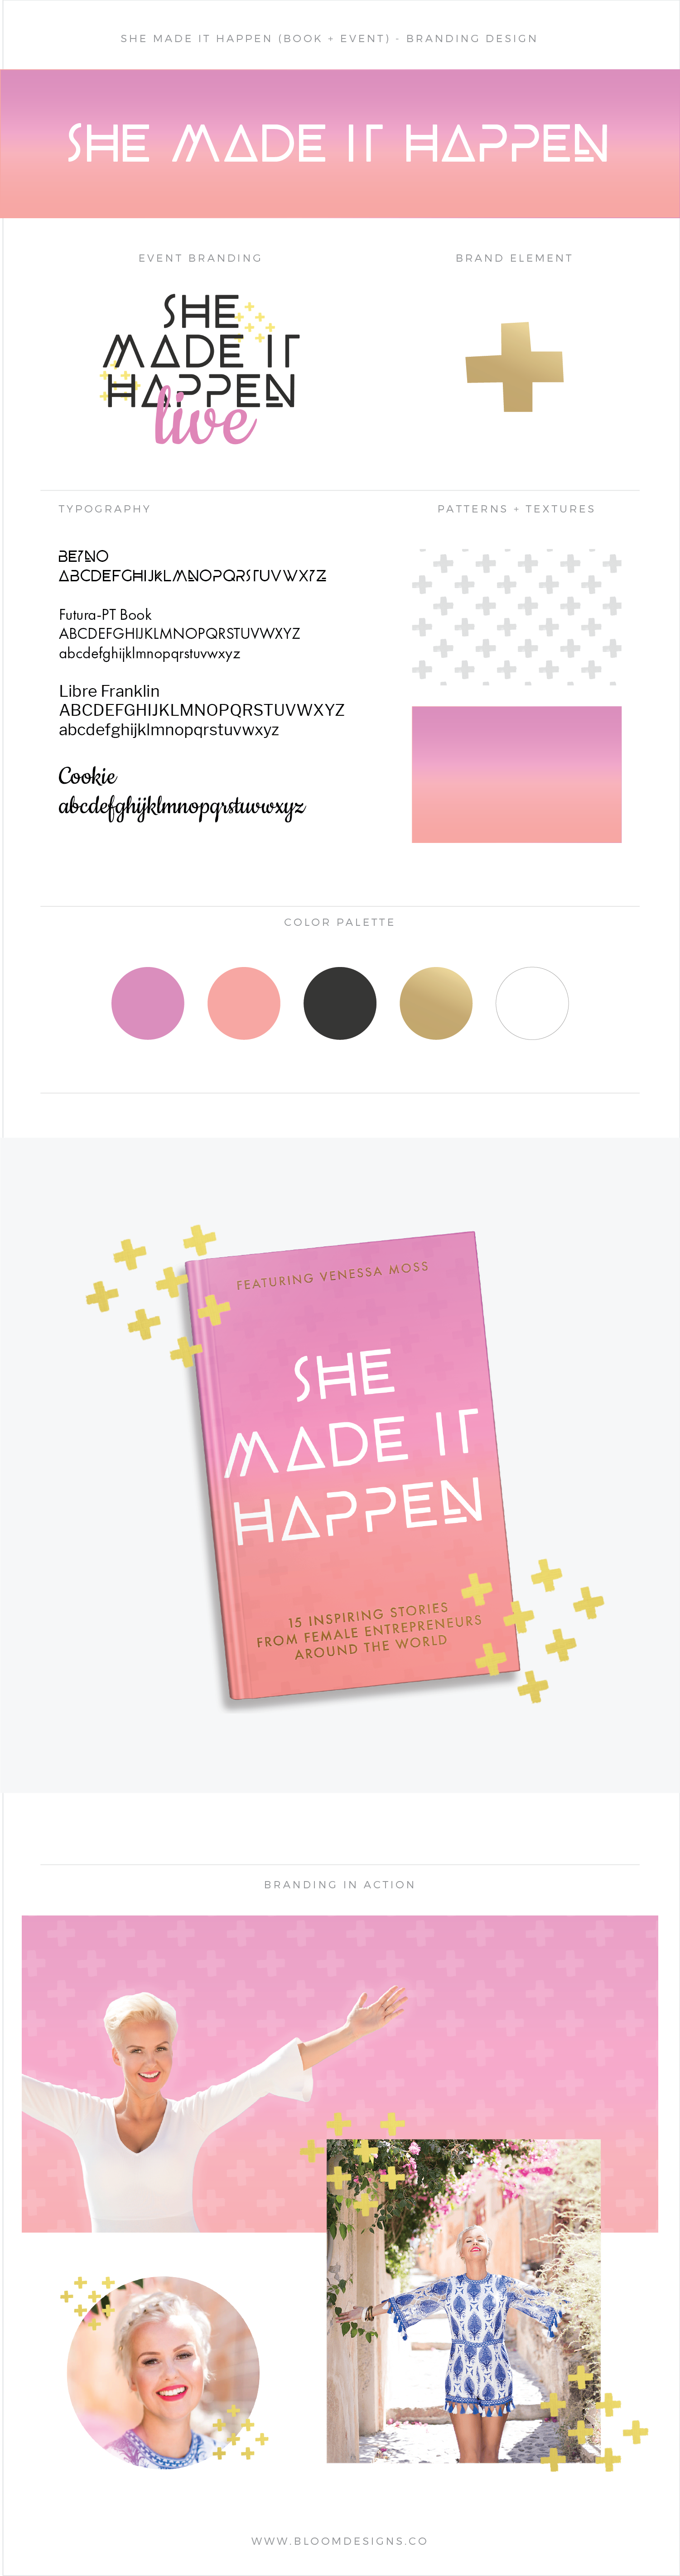 she_made_it_happen_brand board.png